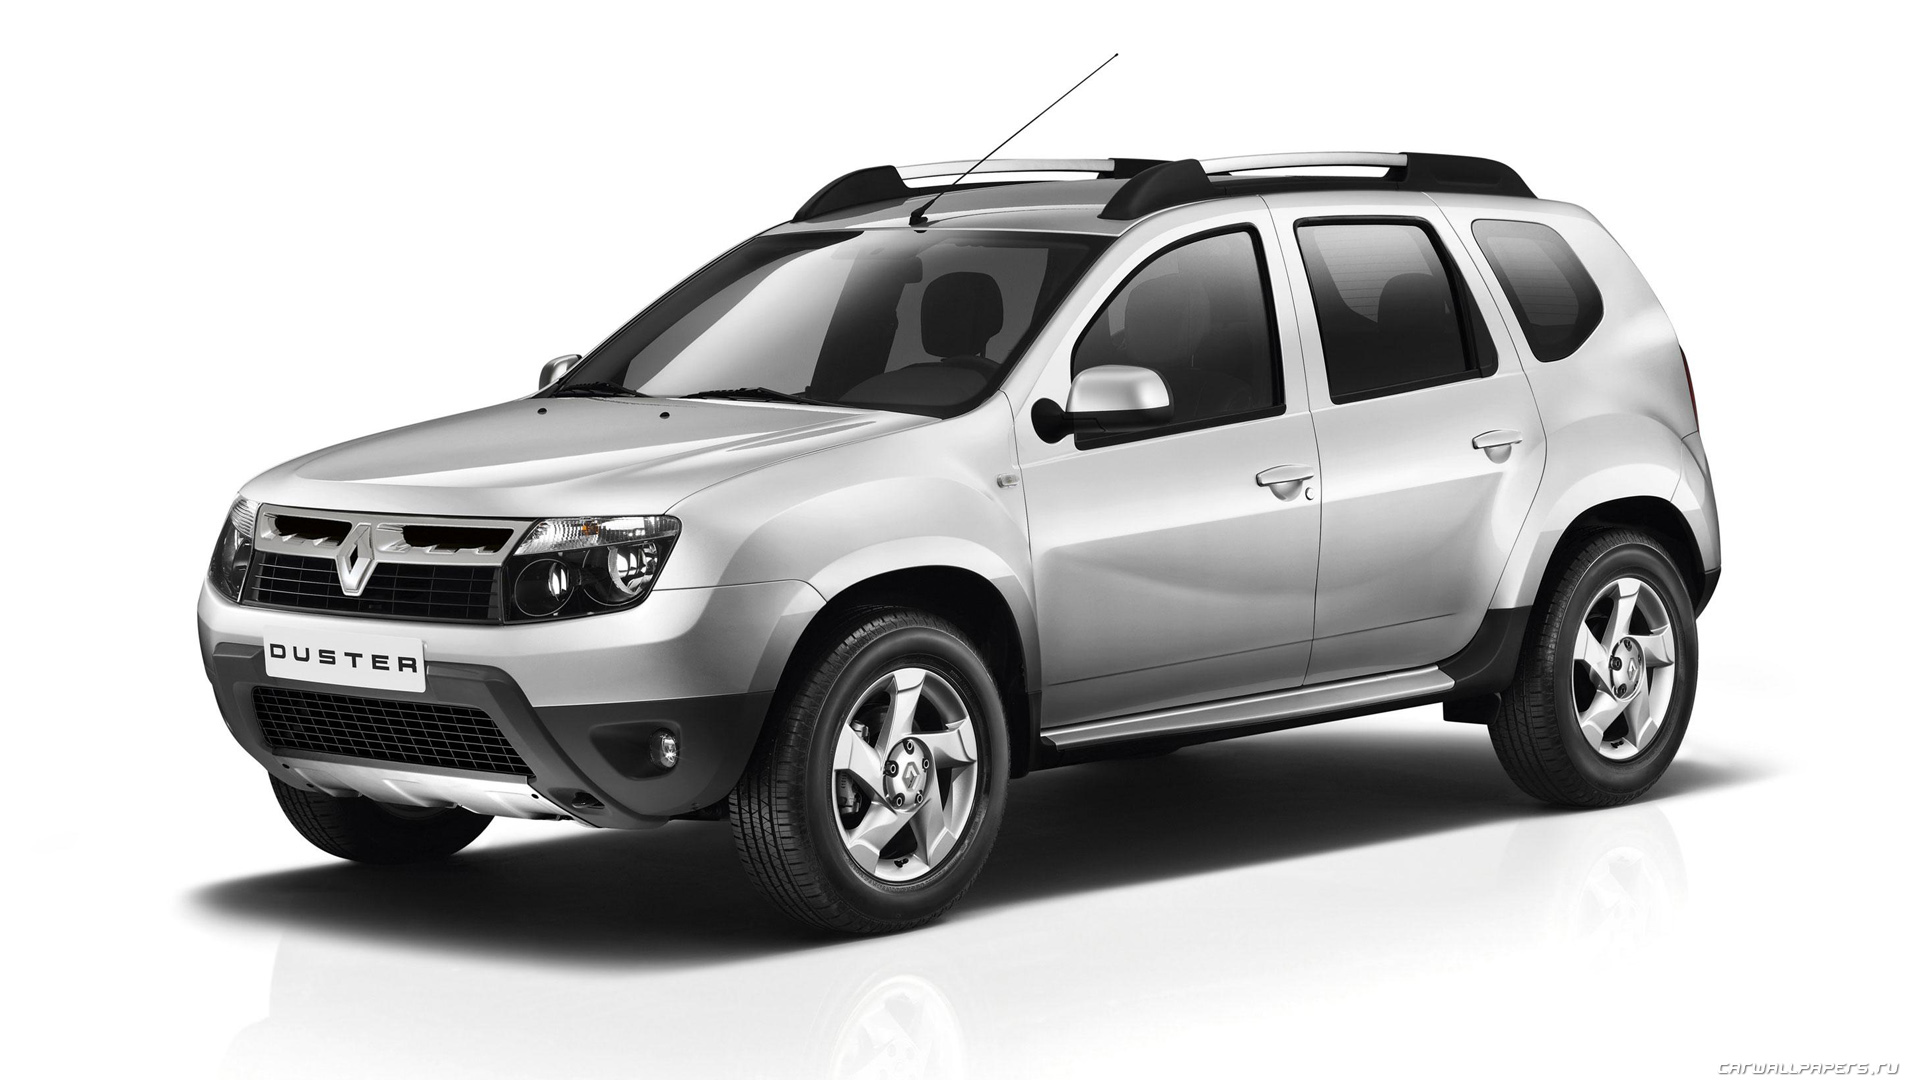 2010 renault duster pictures information and specs auto. Black Bedroom Furniture Sets. Home Design Ideas